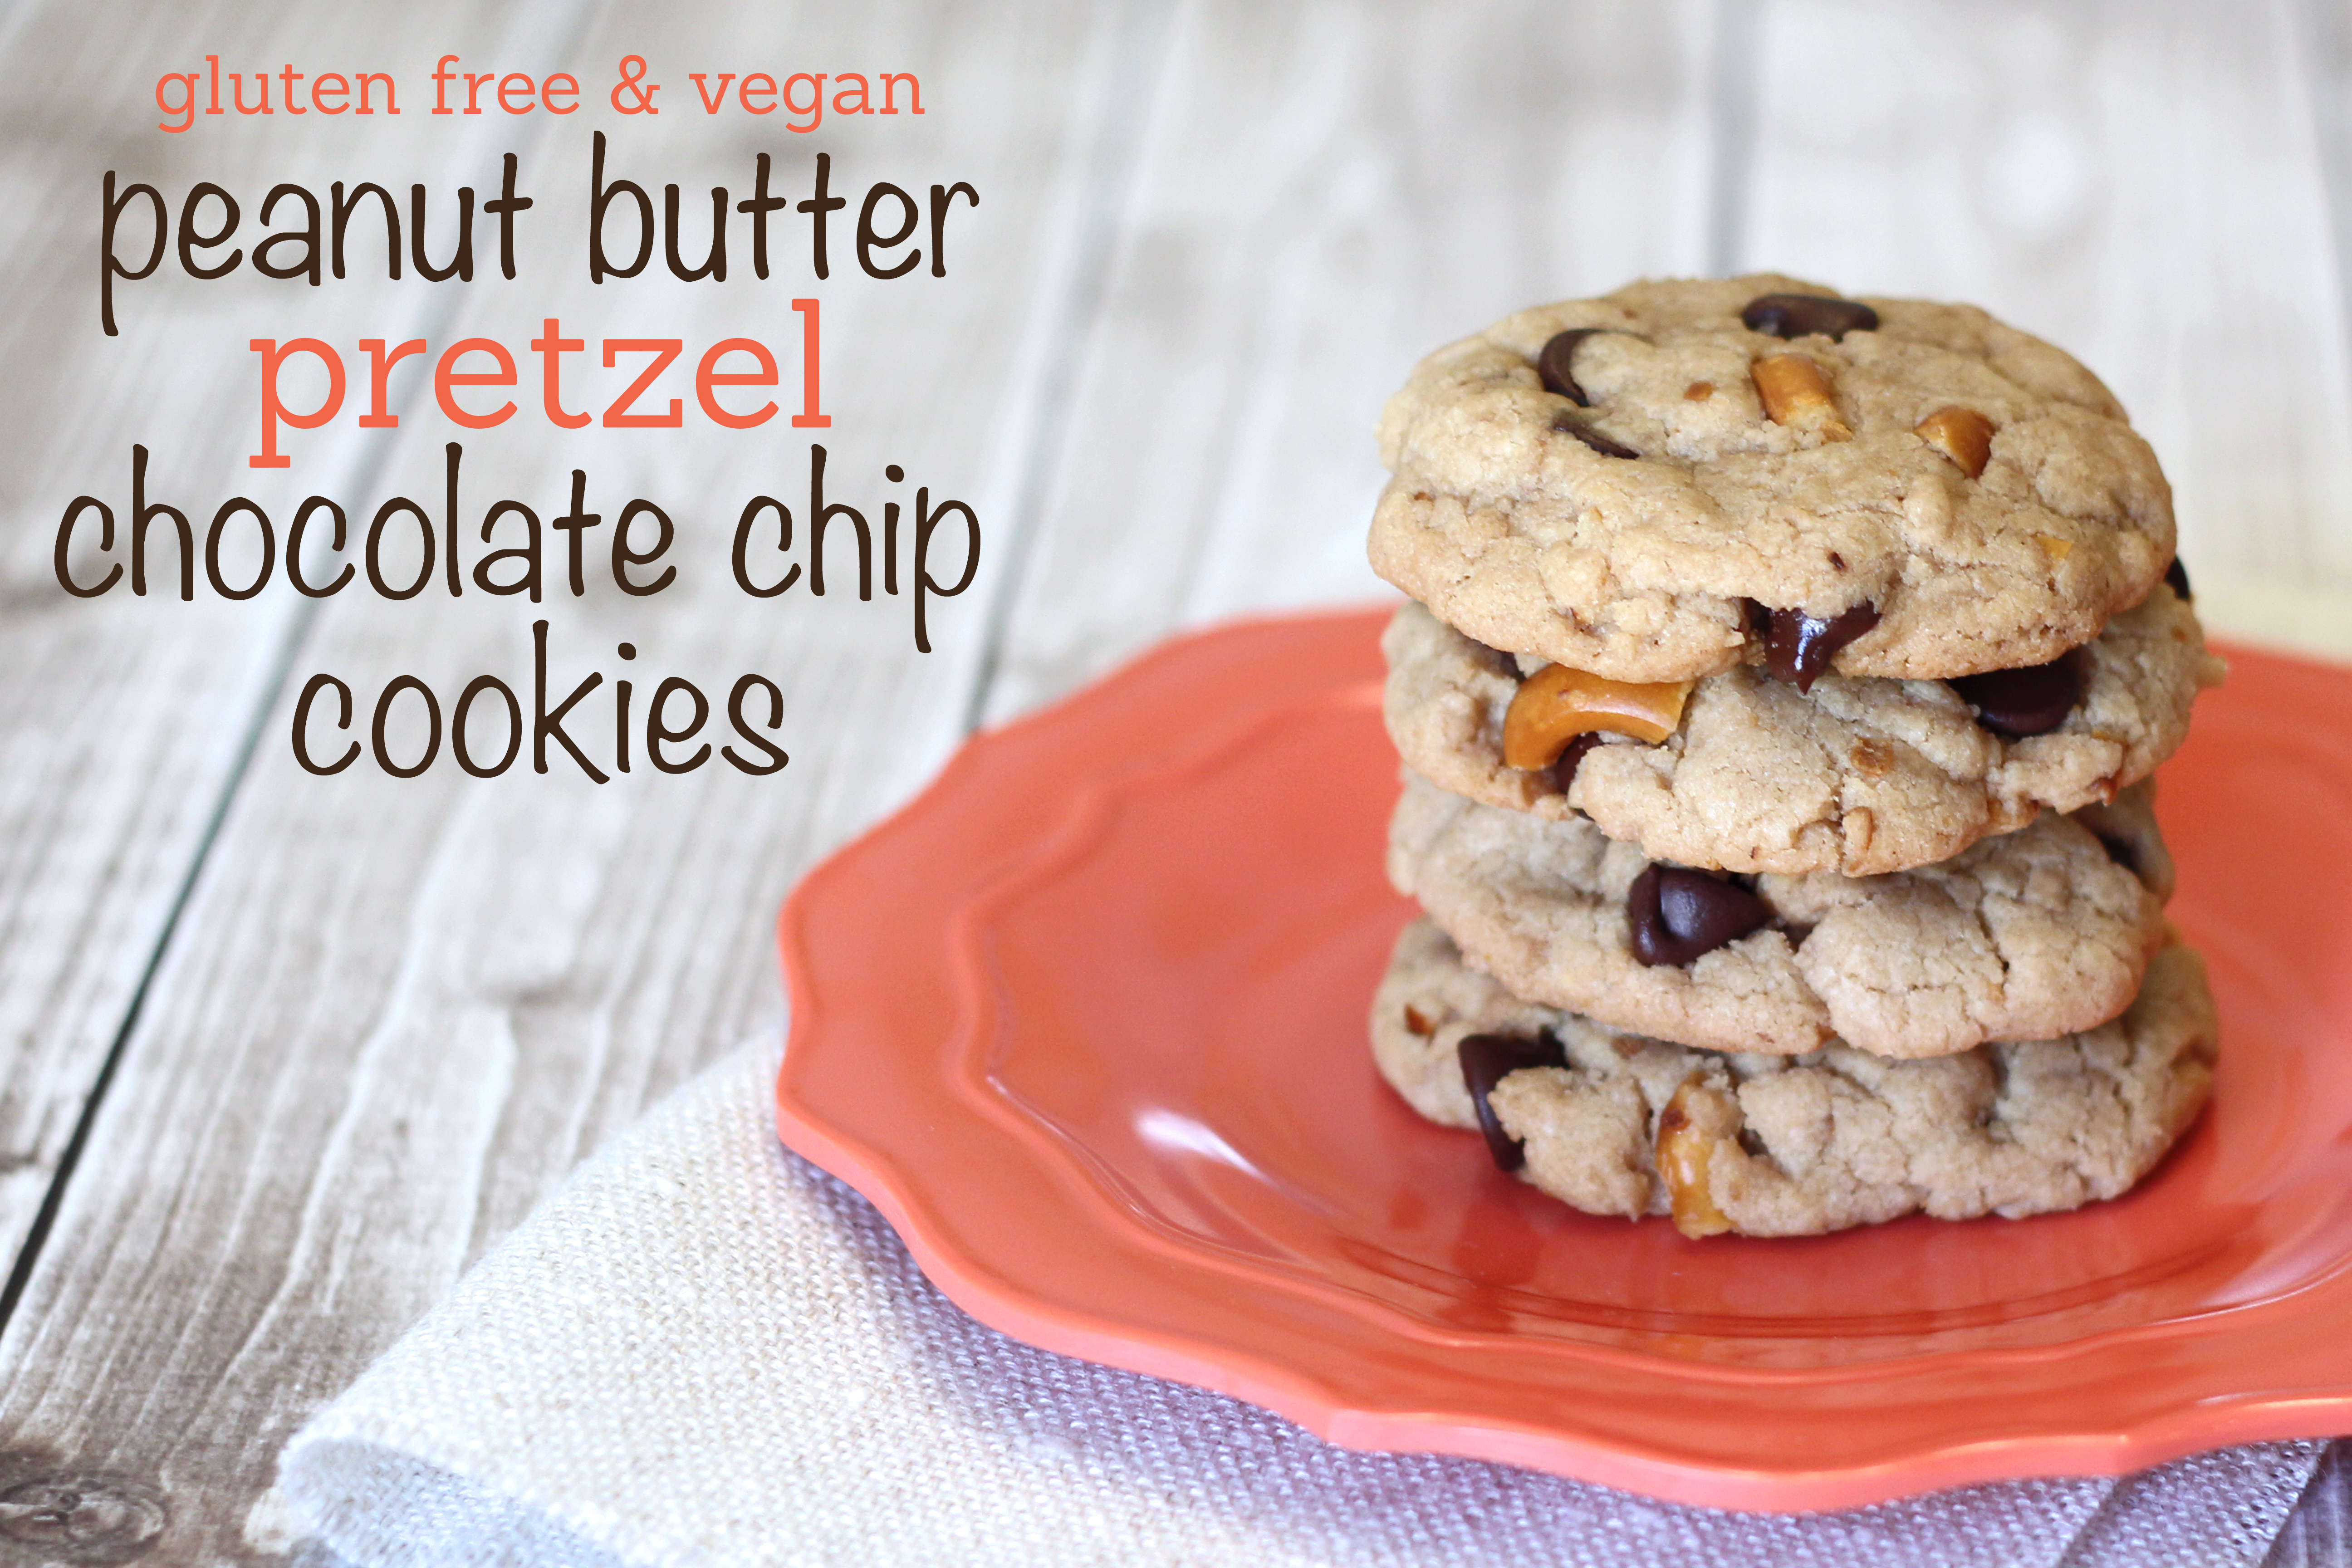 Peanut butter pretzel cookies - Ask Anna